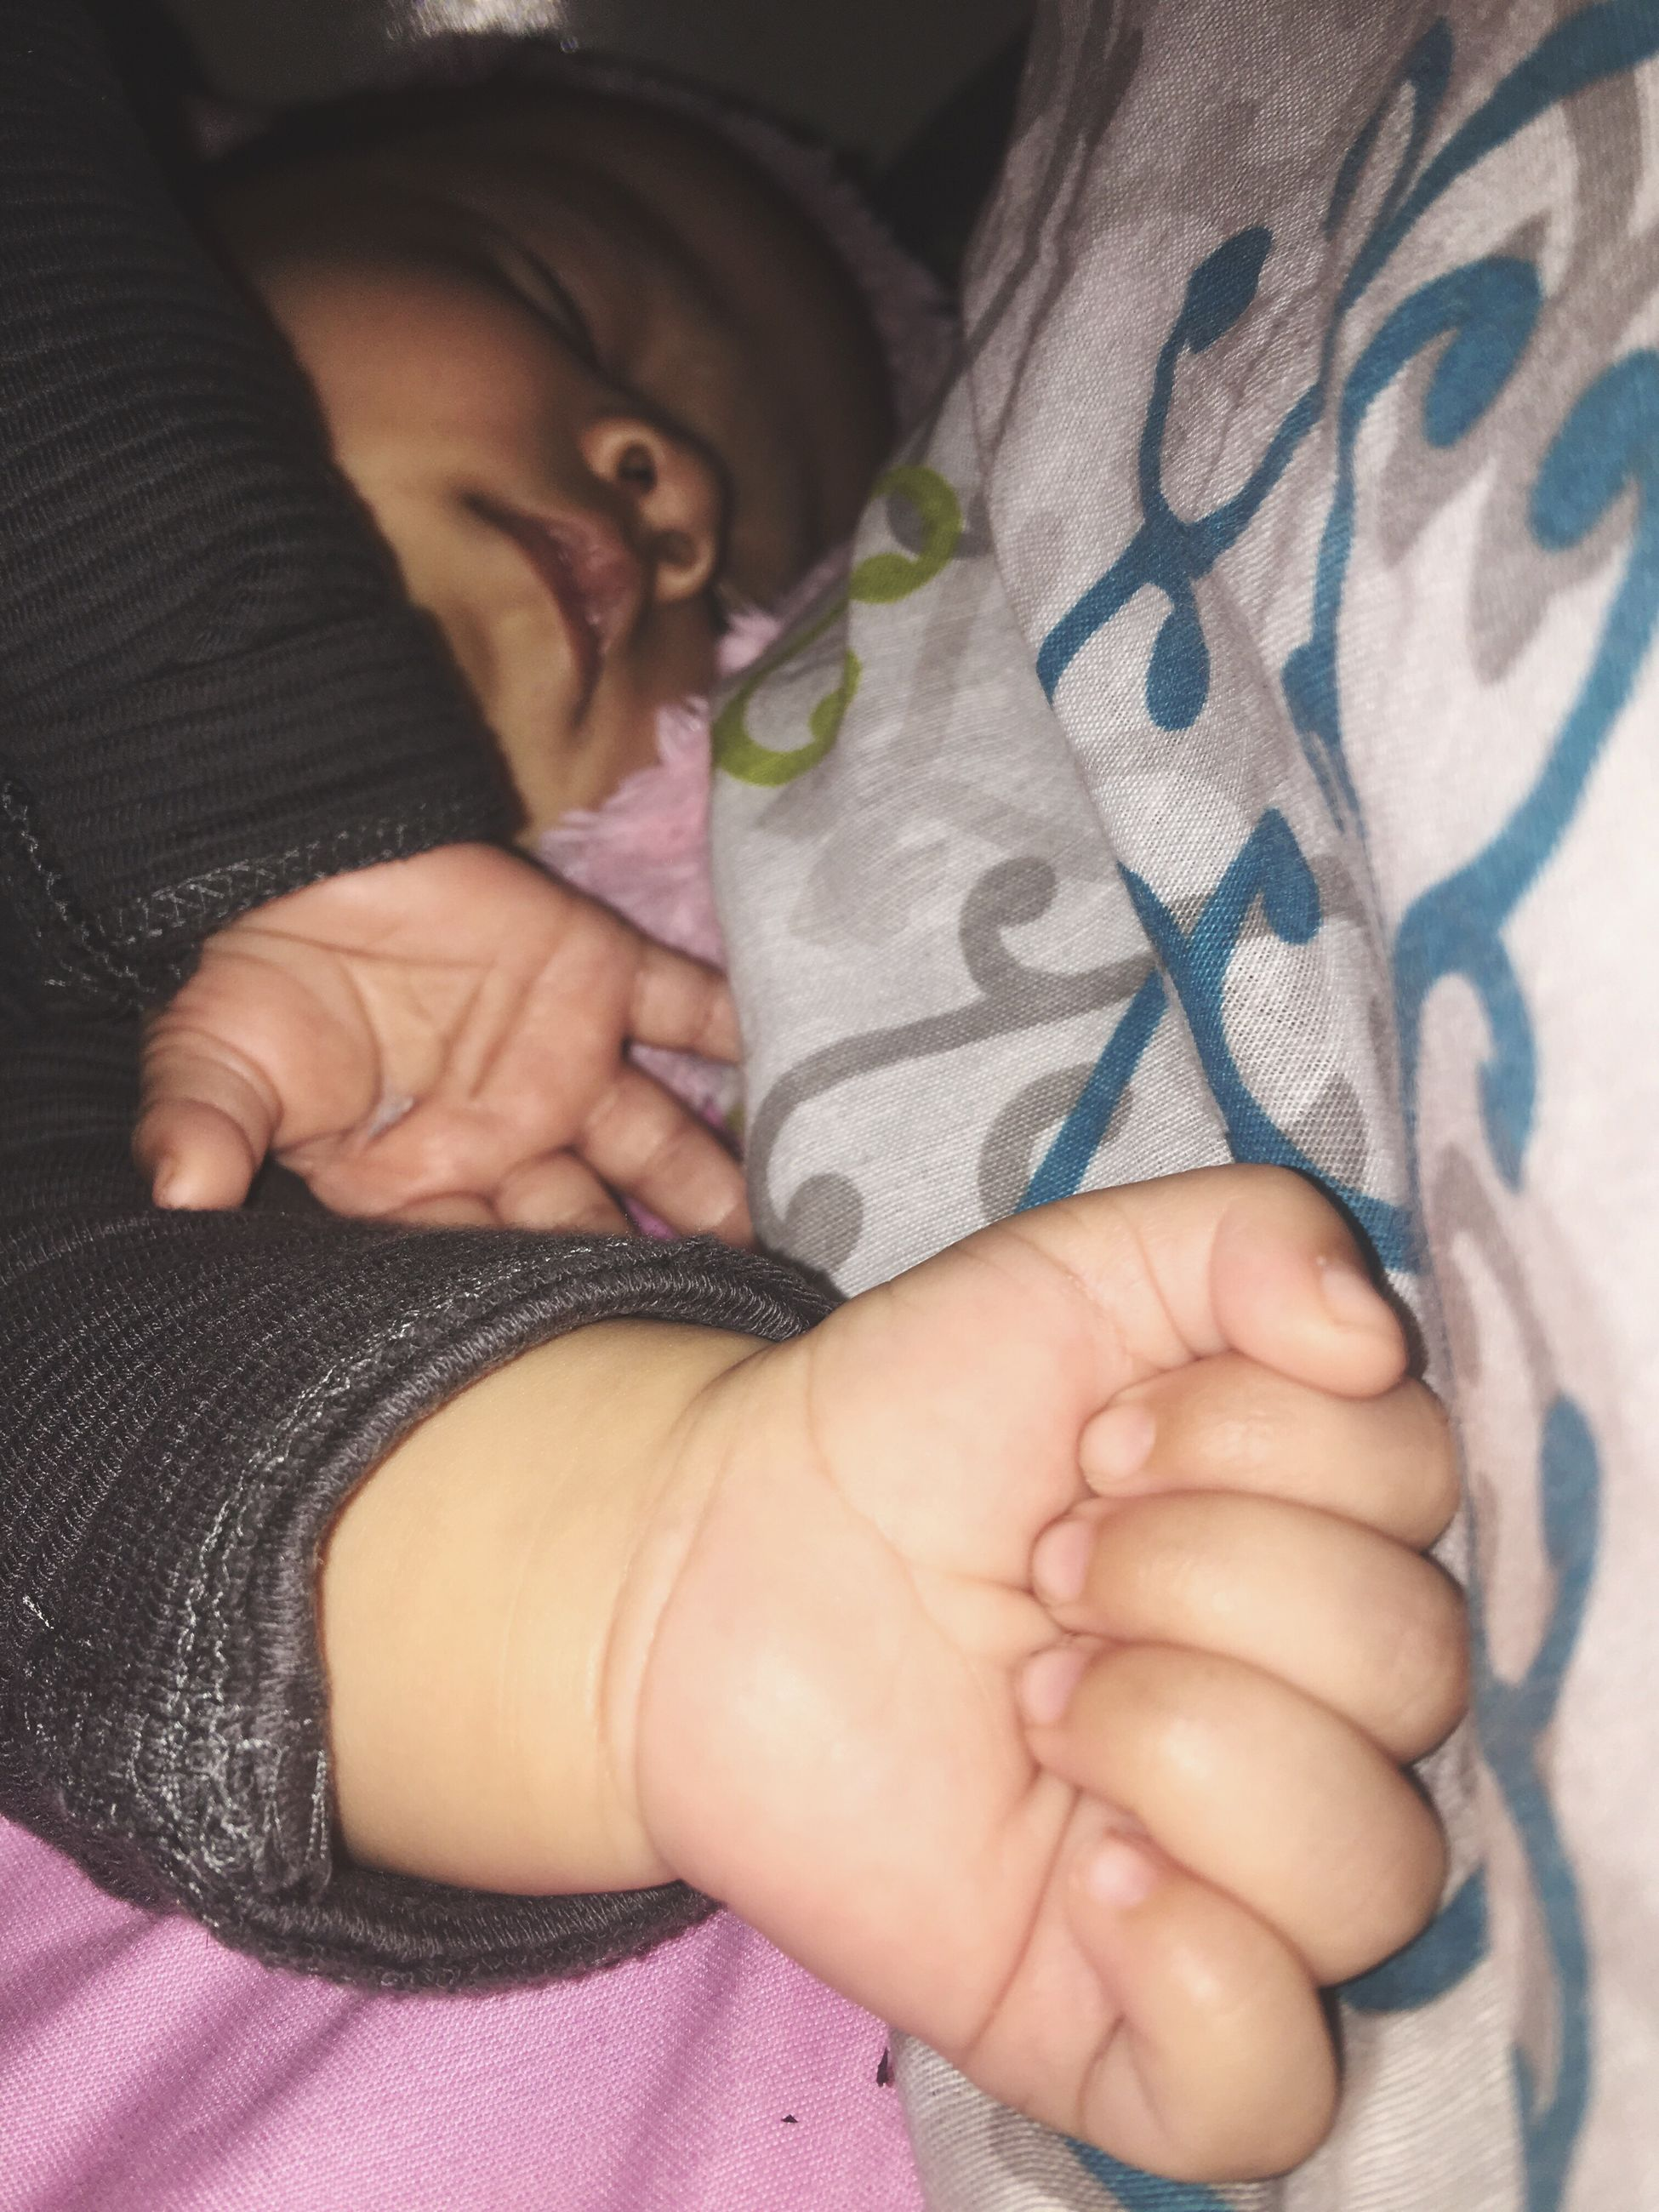 real people, one person, baby, childhood, indoors, babyhood, lifestyles, bed, leisure activity, newborn, human hand, close-up, fragility, day, young adult, people